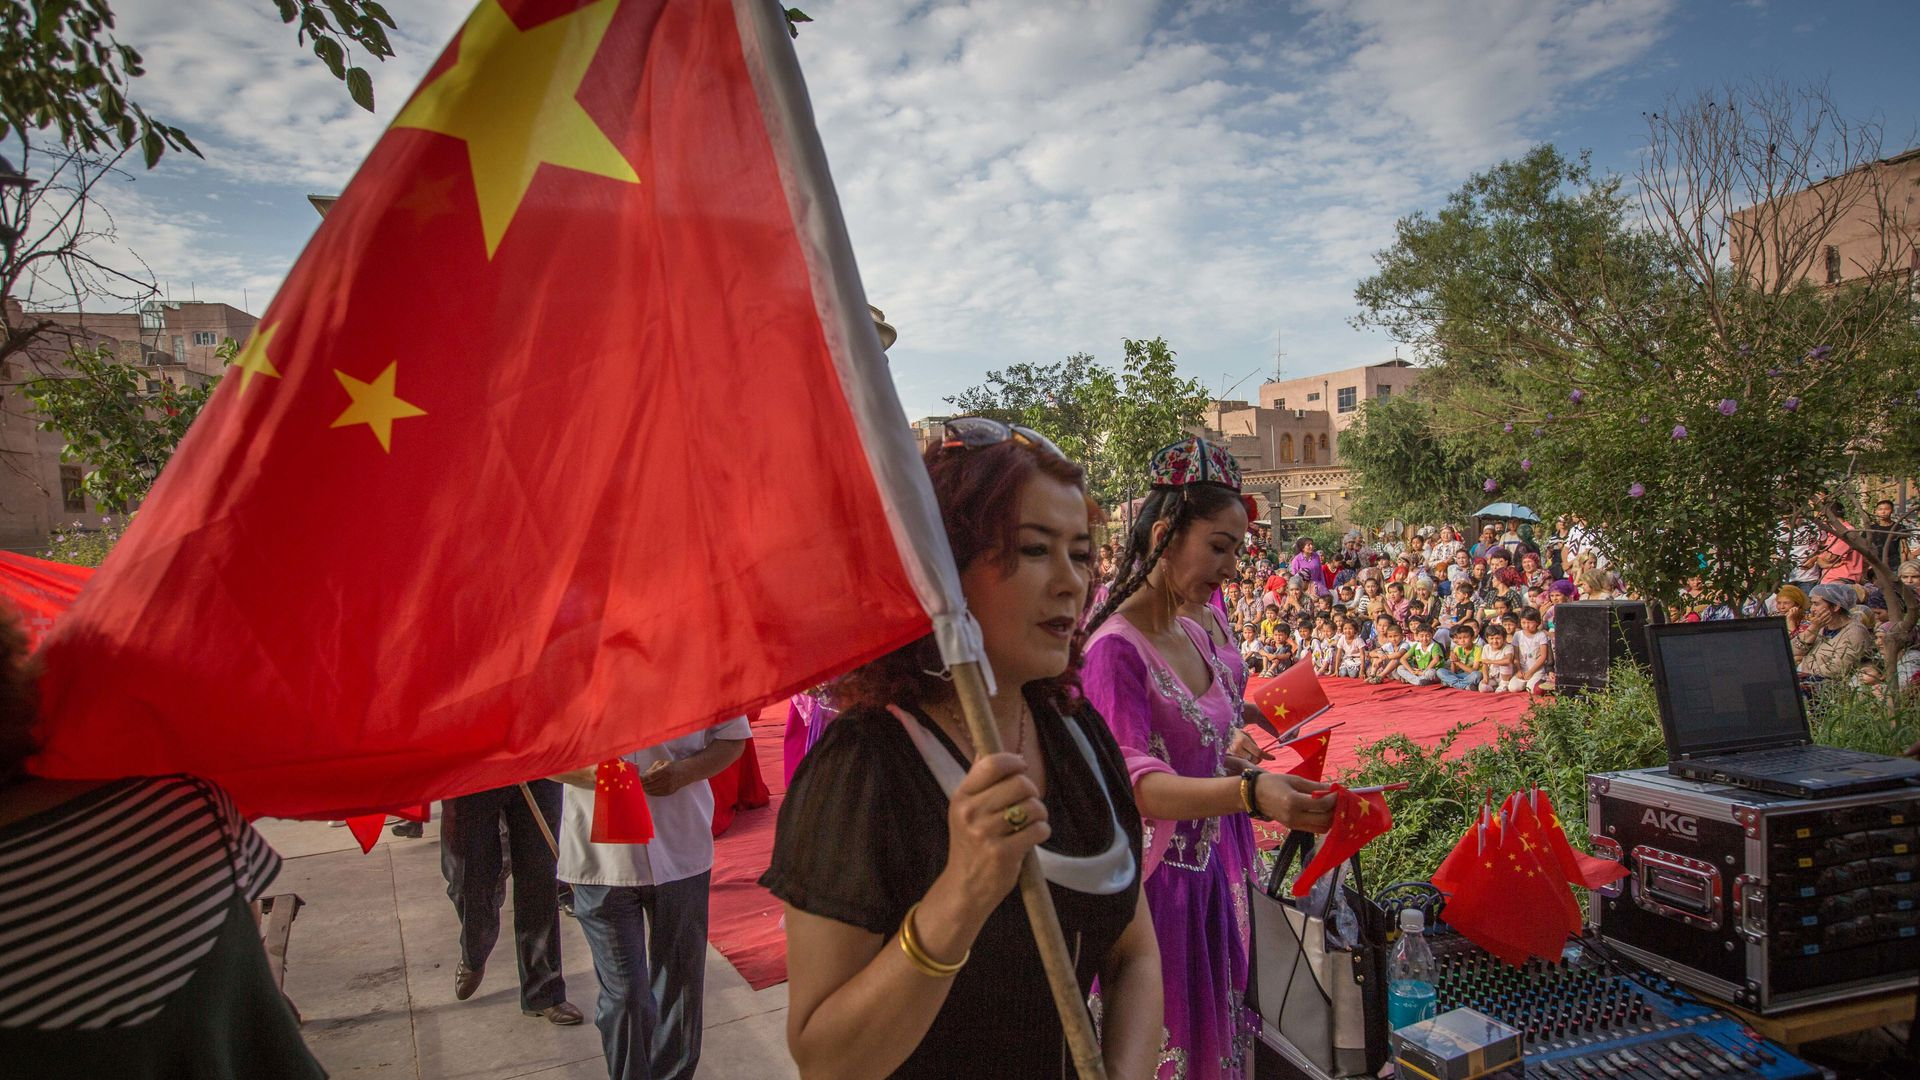 In this image, a Uyghur woman in a black shirt holds a Chinese flag above her as she walks down the street on a cloudy day.